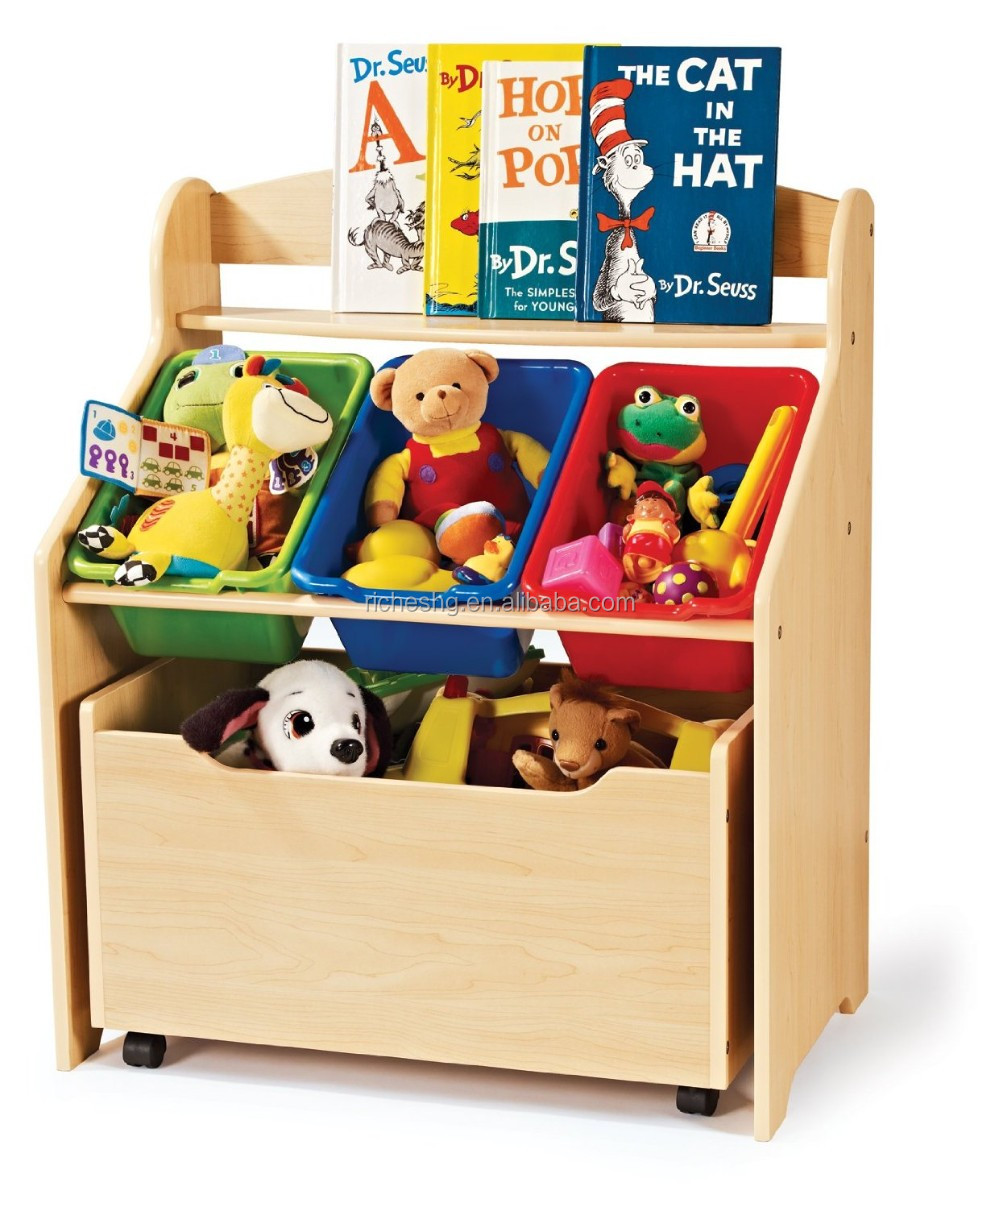 new and popular design wooden toy organizer for kids with 5 plastic